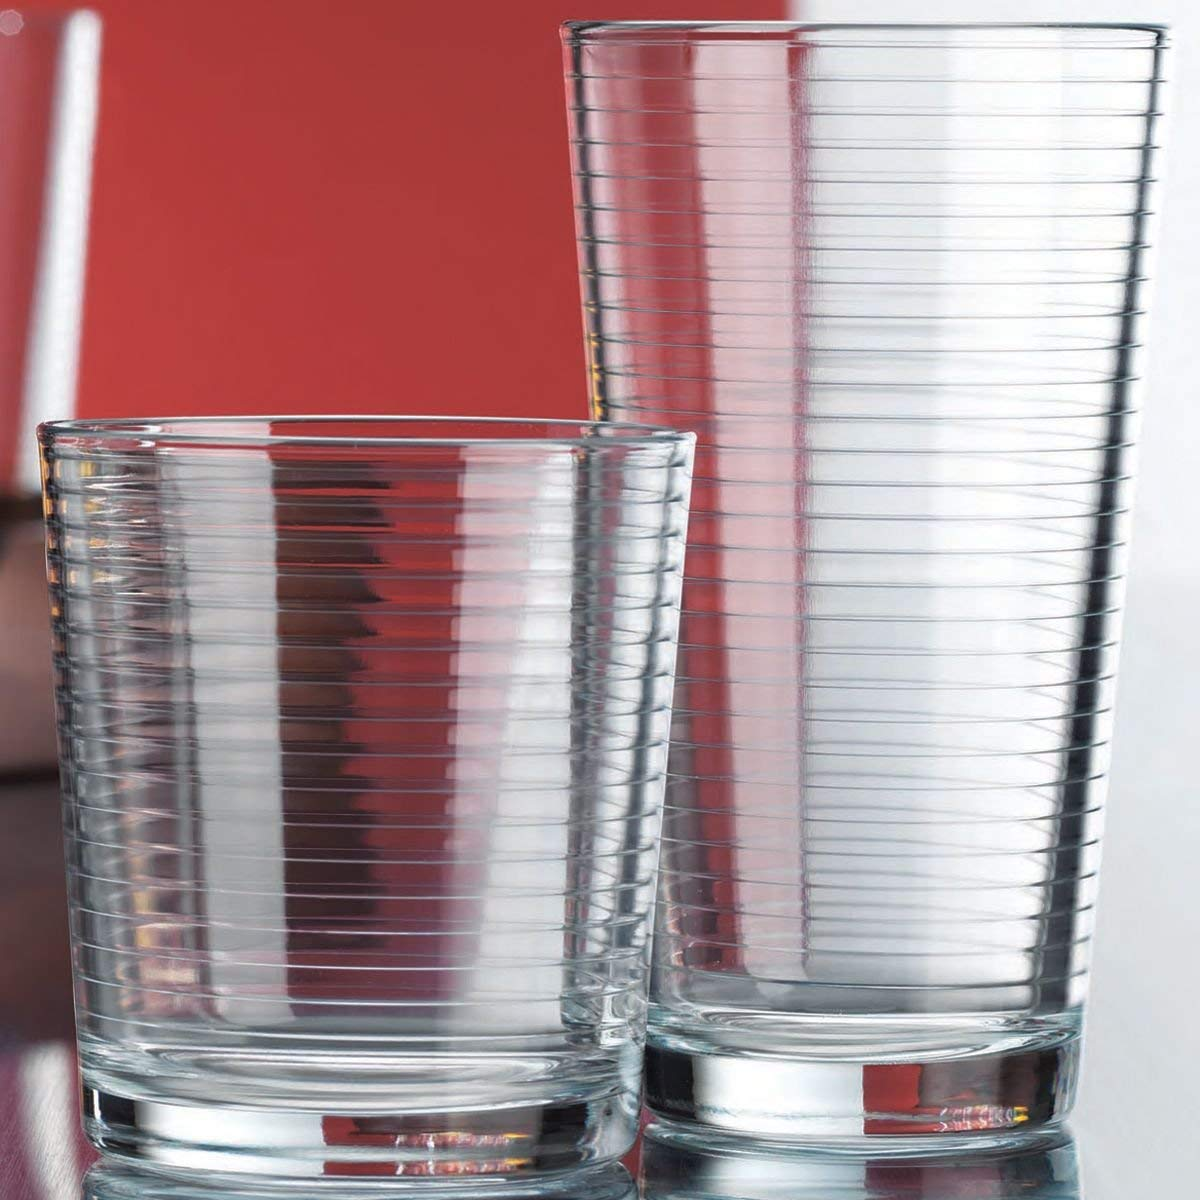 Set of 12 Durable Drinking Glasses   Glassware Set Includes 6-17oz Highball Glasses 6-13oz DOF Glasses   Heavy Base Glass Cups for Water, Juice, Beer, Wine, and Cocktails by Le'raze